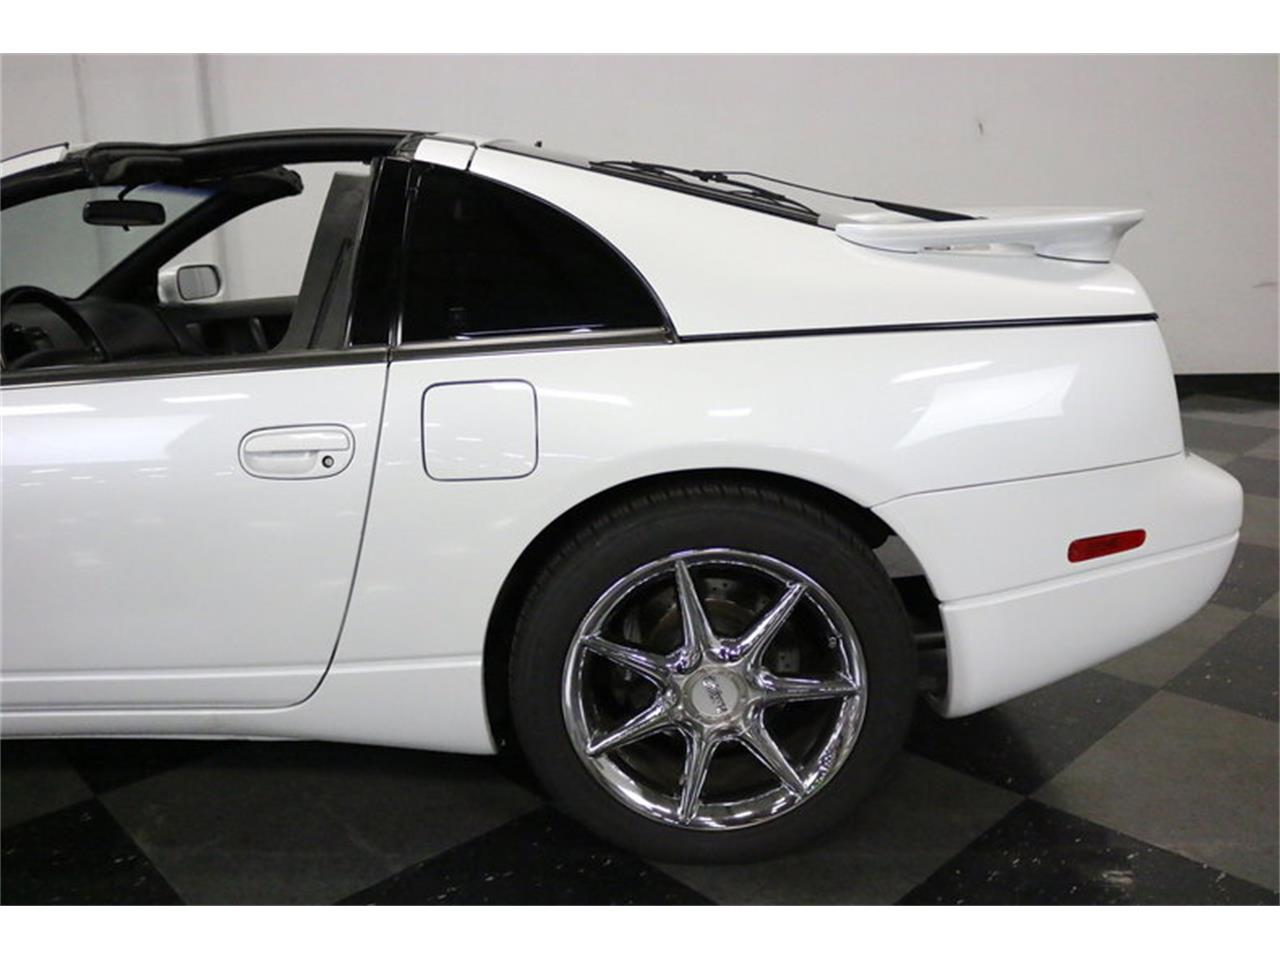 Large Picture of '95 Nissan 300ZX located in Ft Worth Texas Offered by Streetside Classics - Dallas / Fort Worth - NIW7